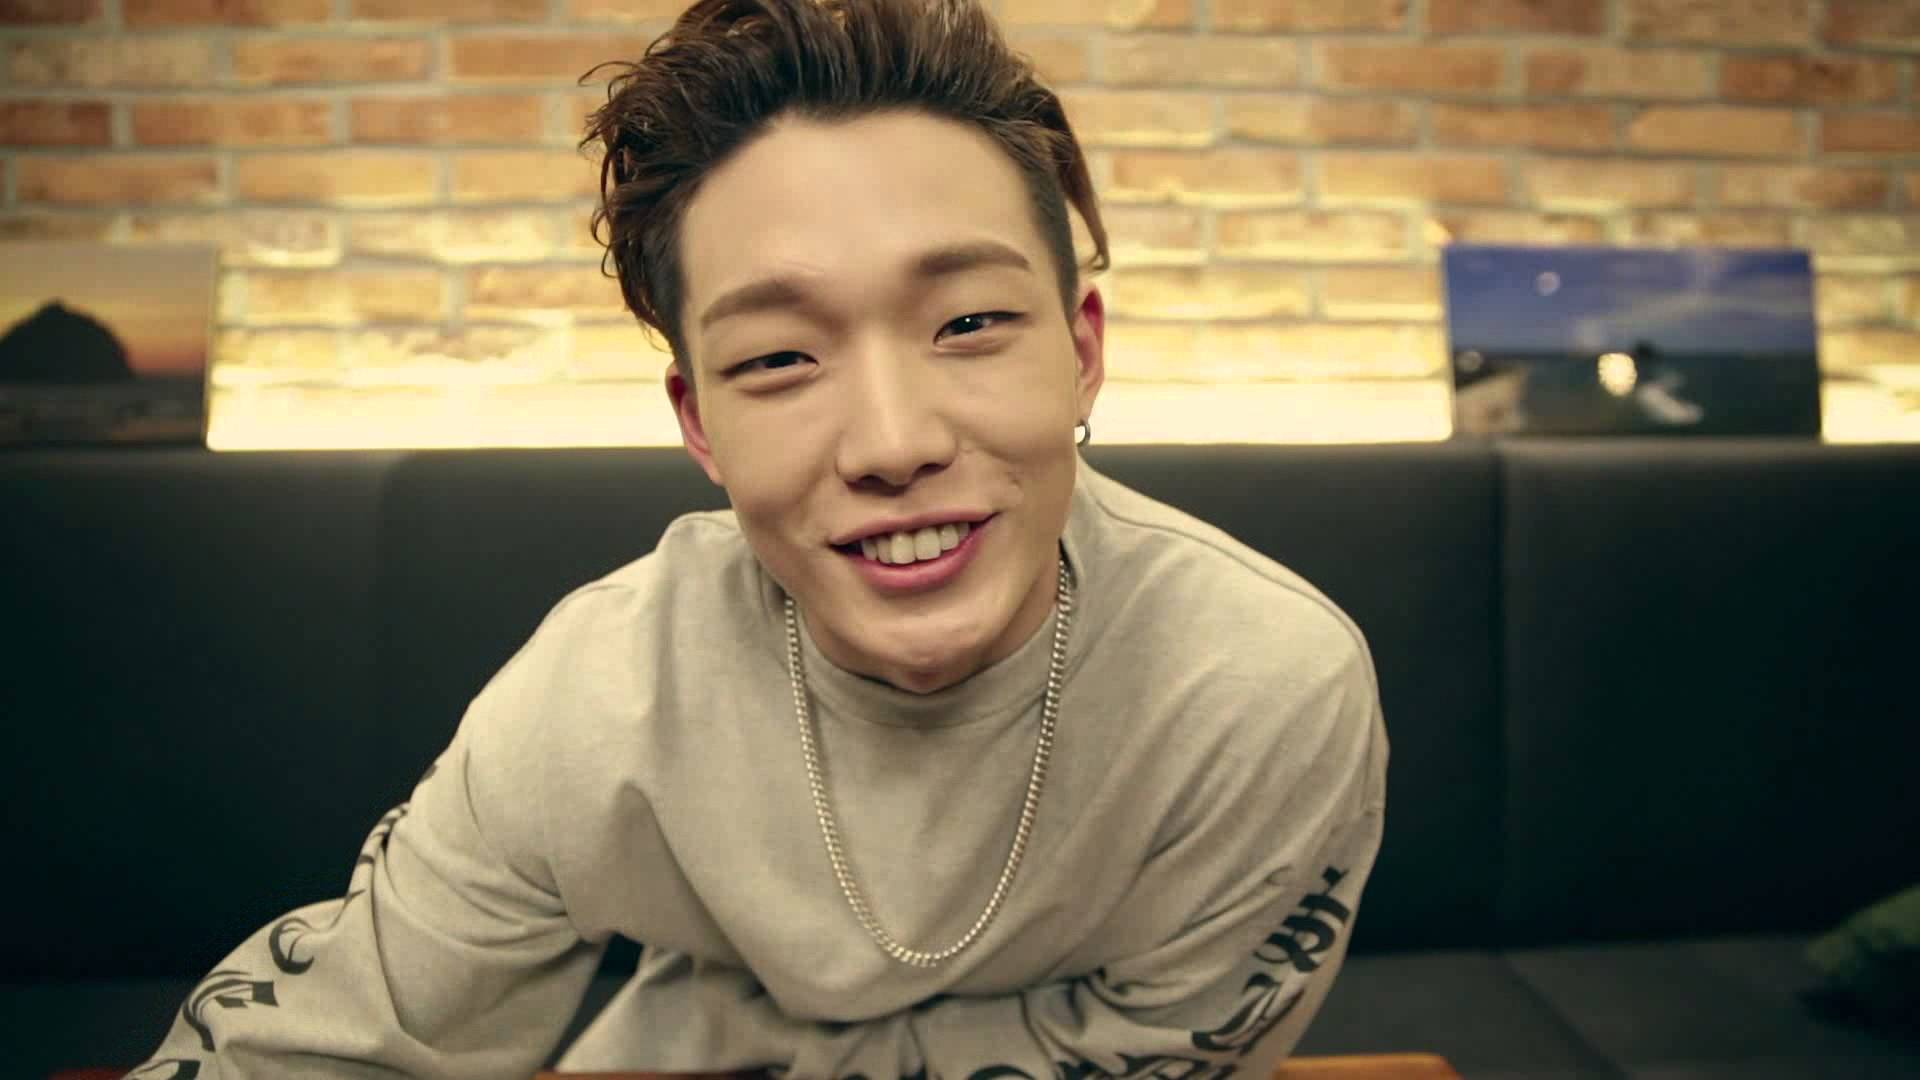 8 Fun Facts About Ikons Bobby on Facts About Name Of Week Days